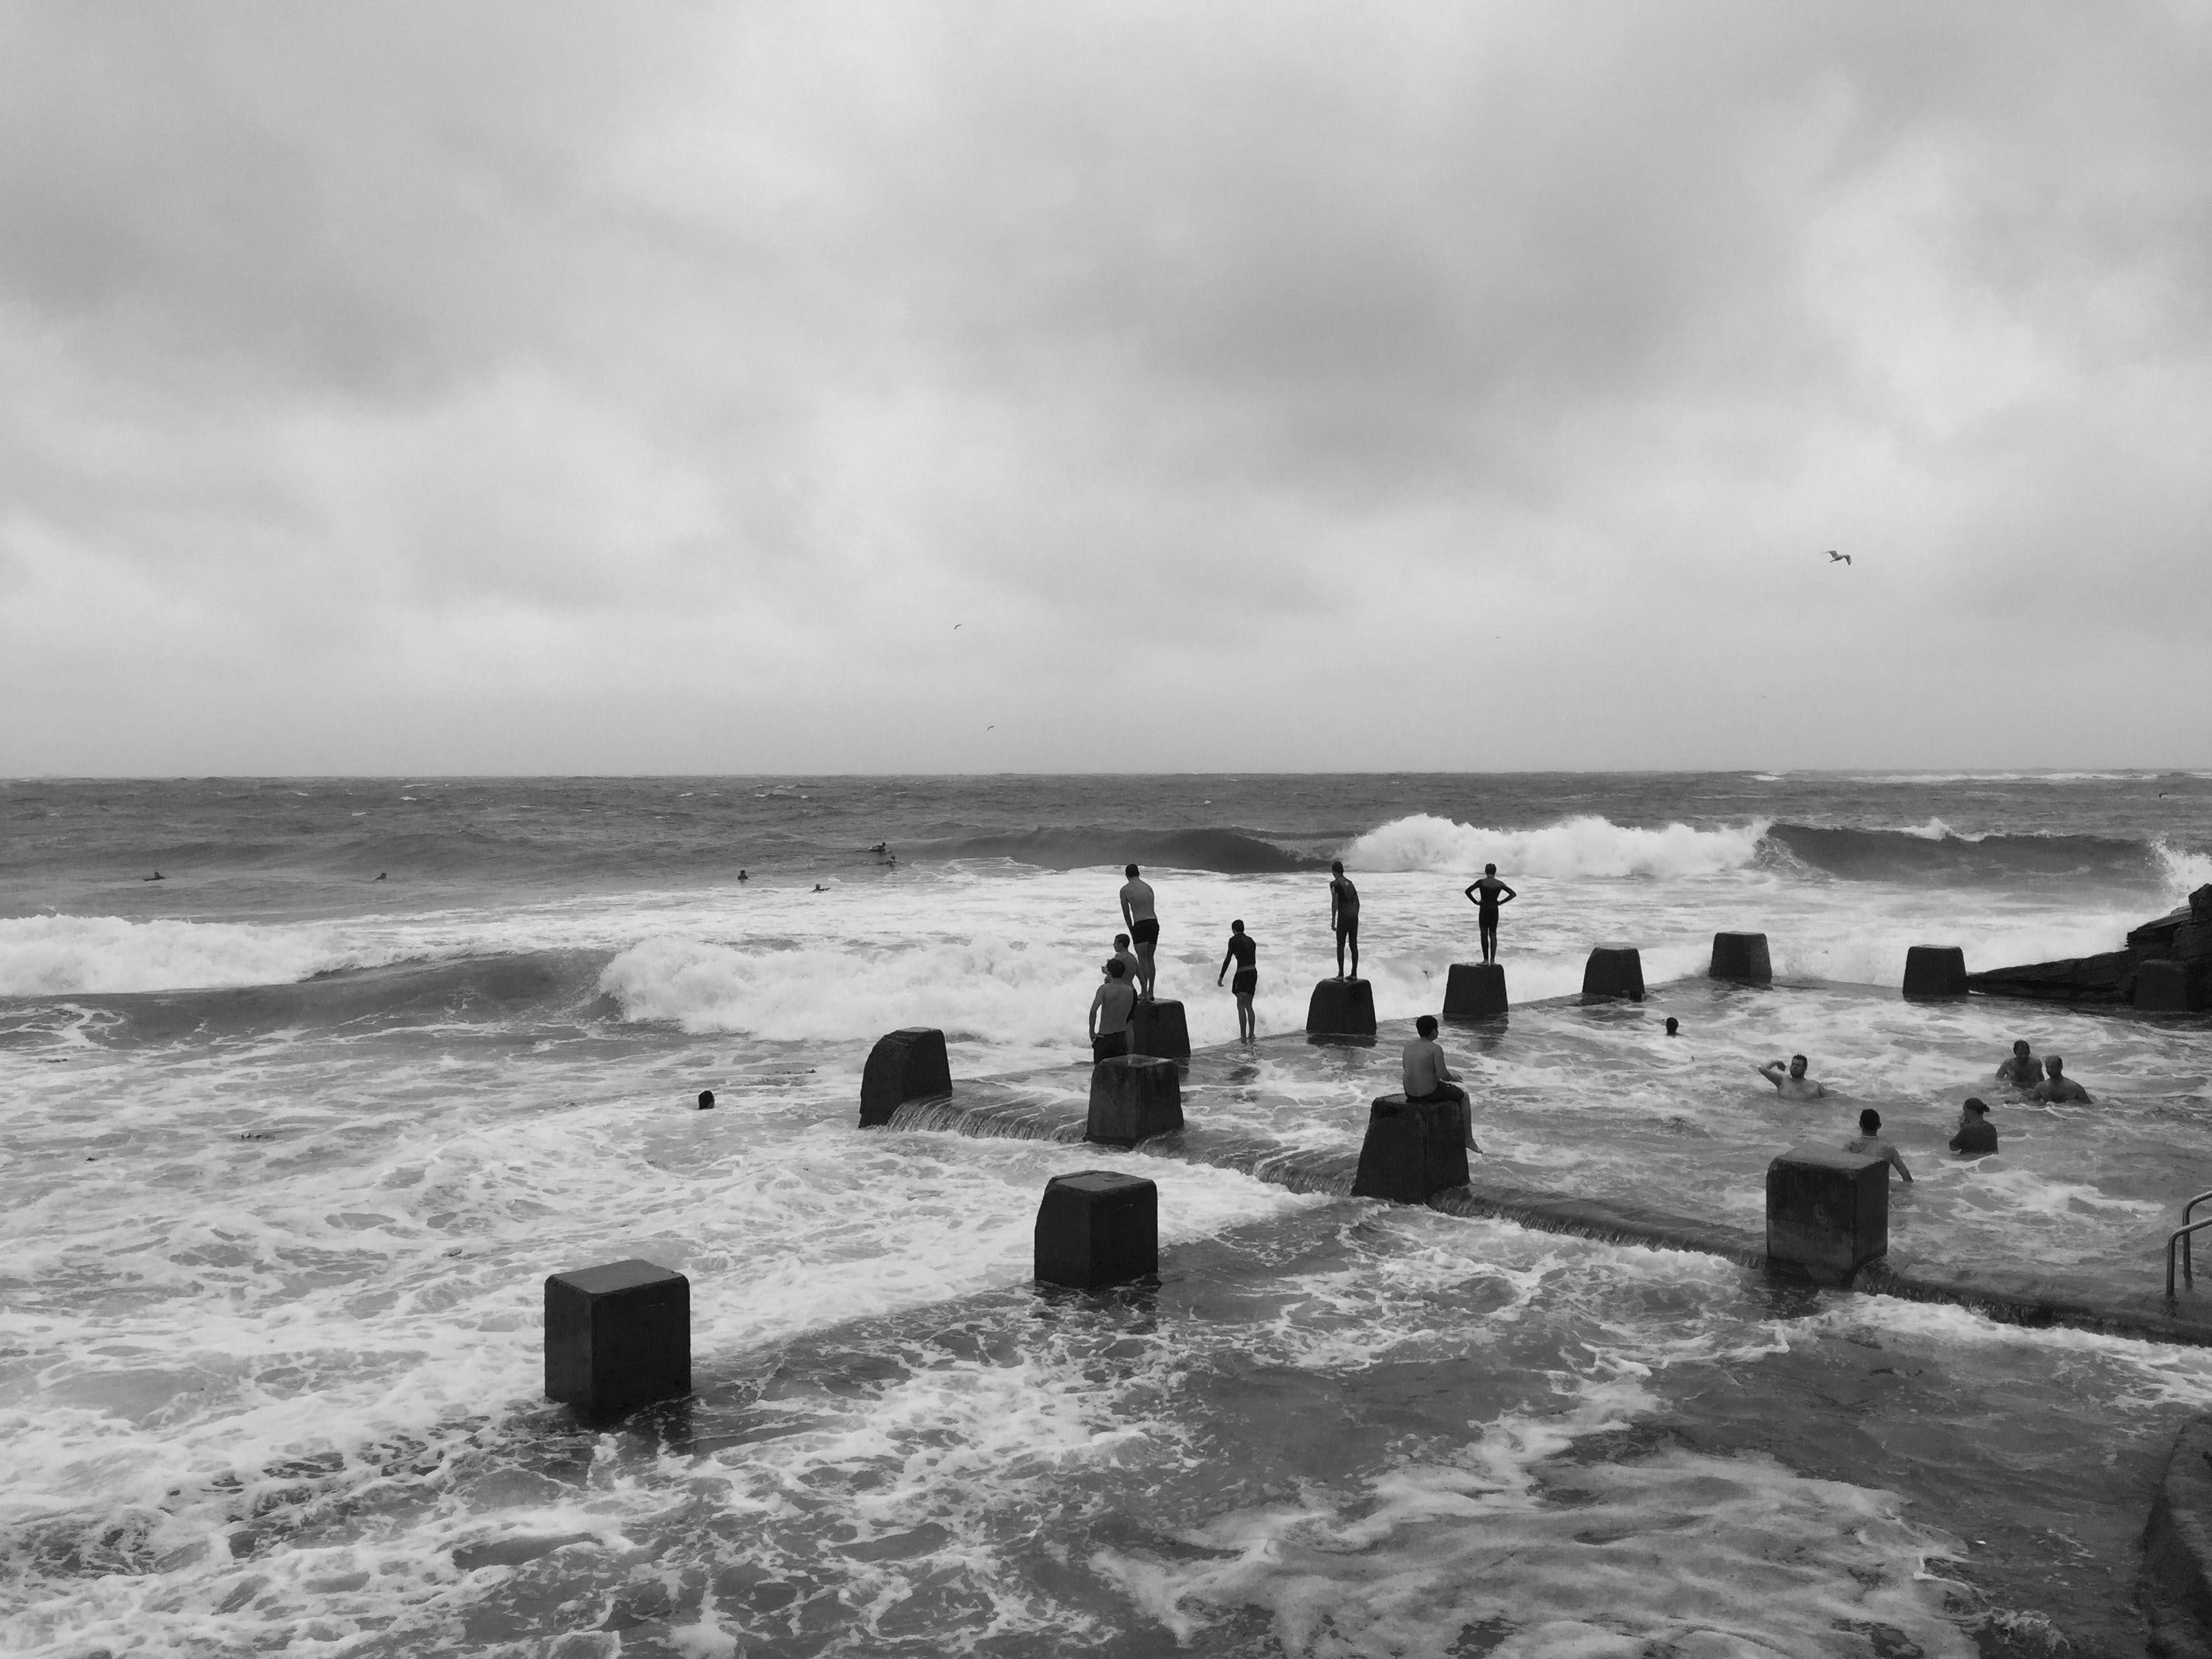 Grayscale Photo of People in Beach